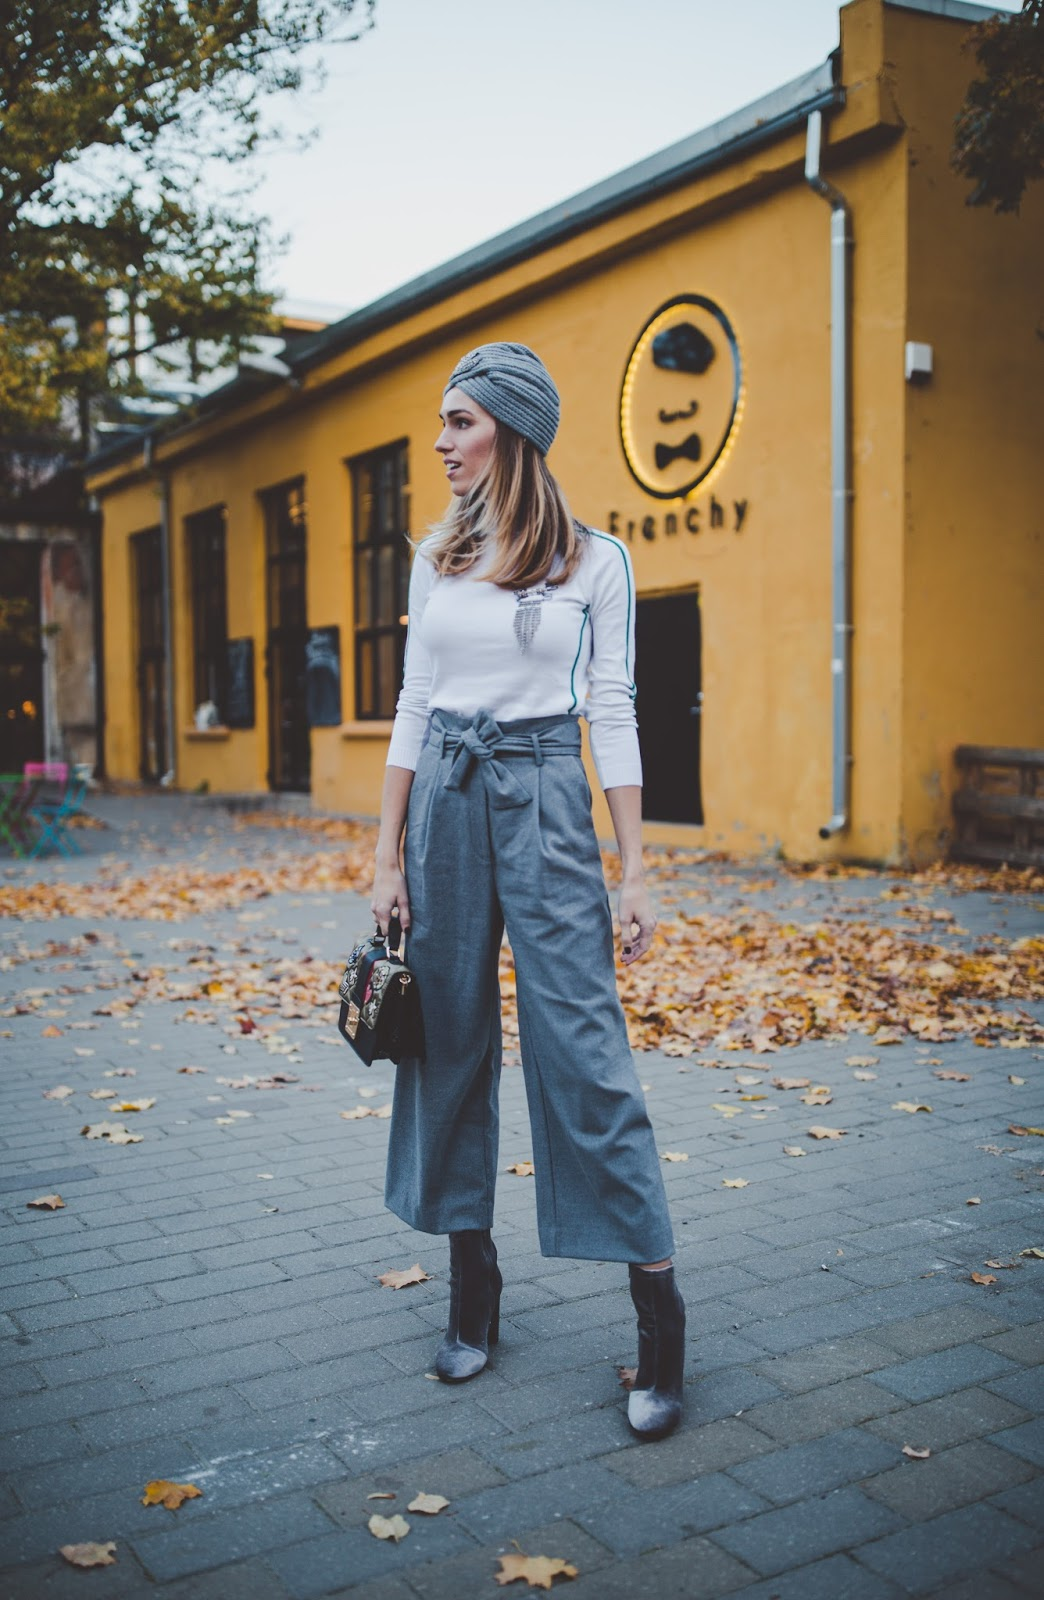 culotte trousers outfit fall